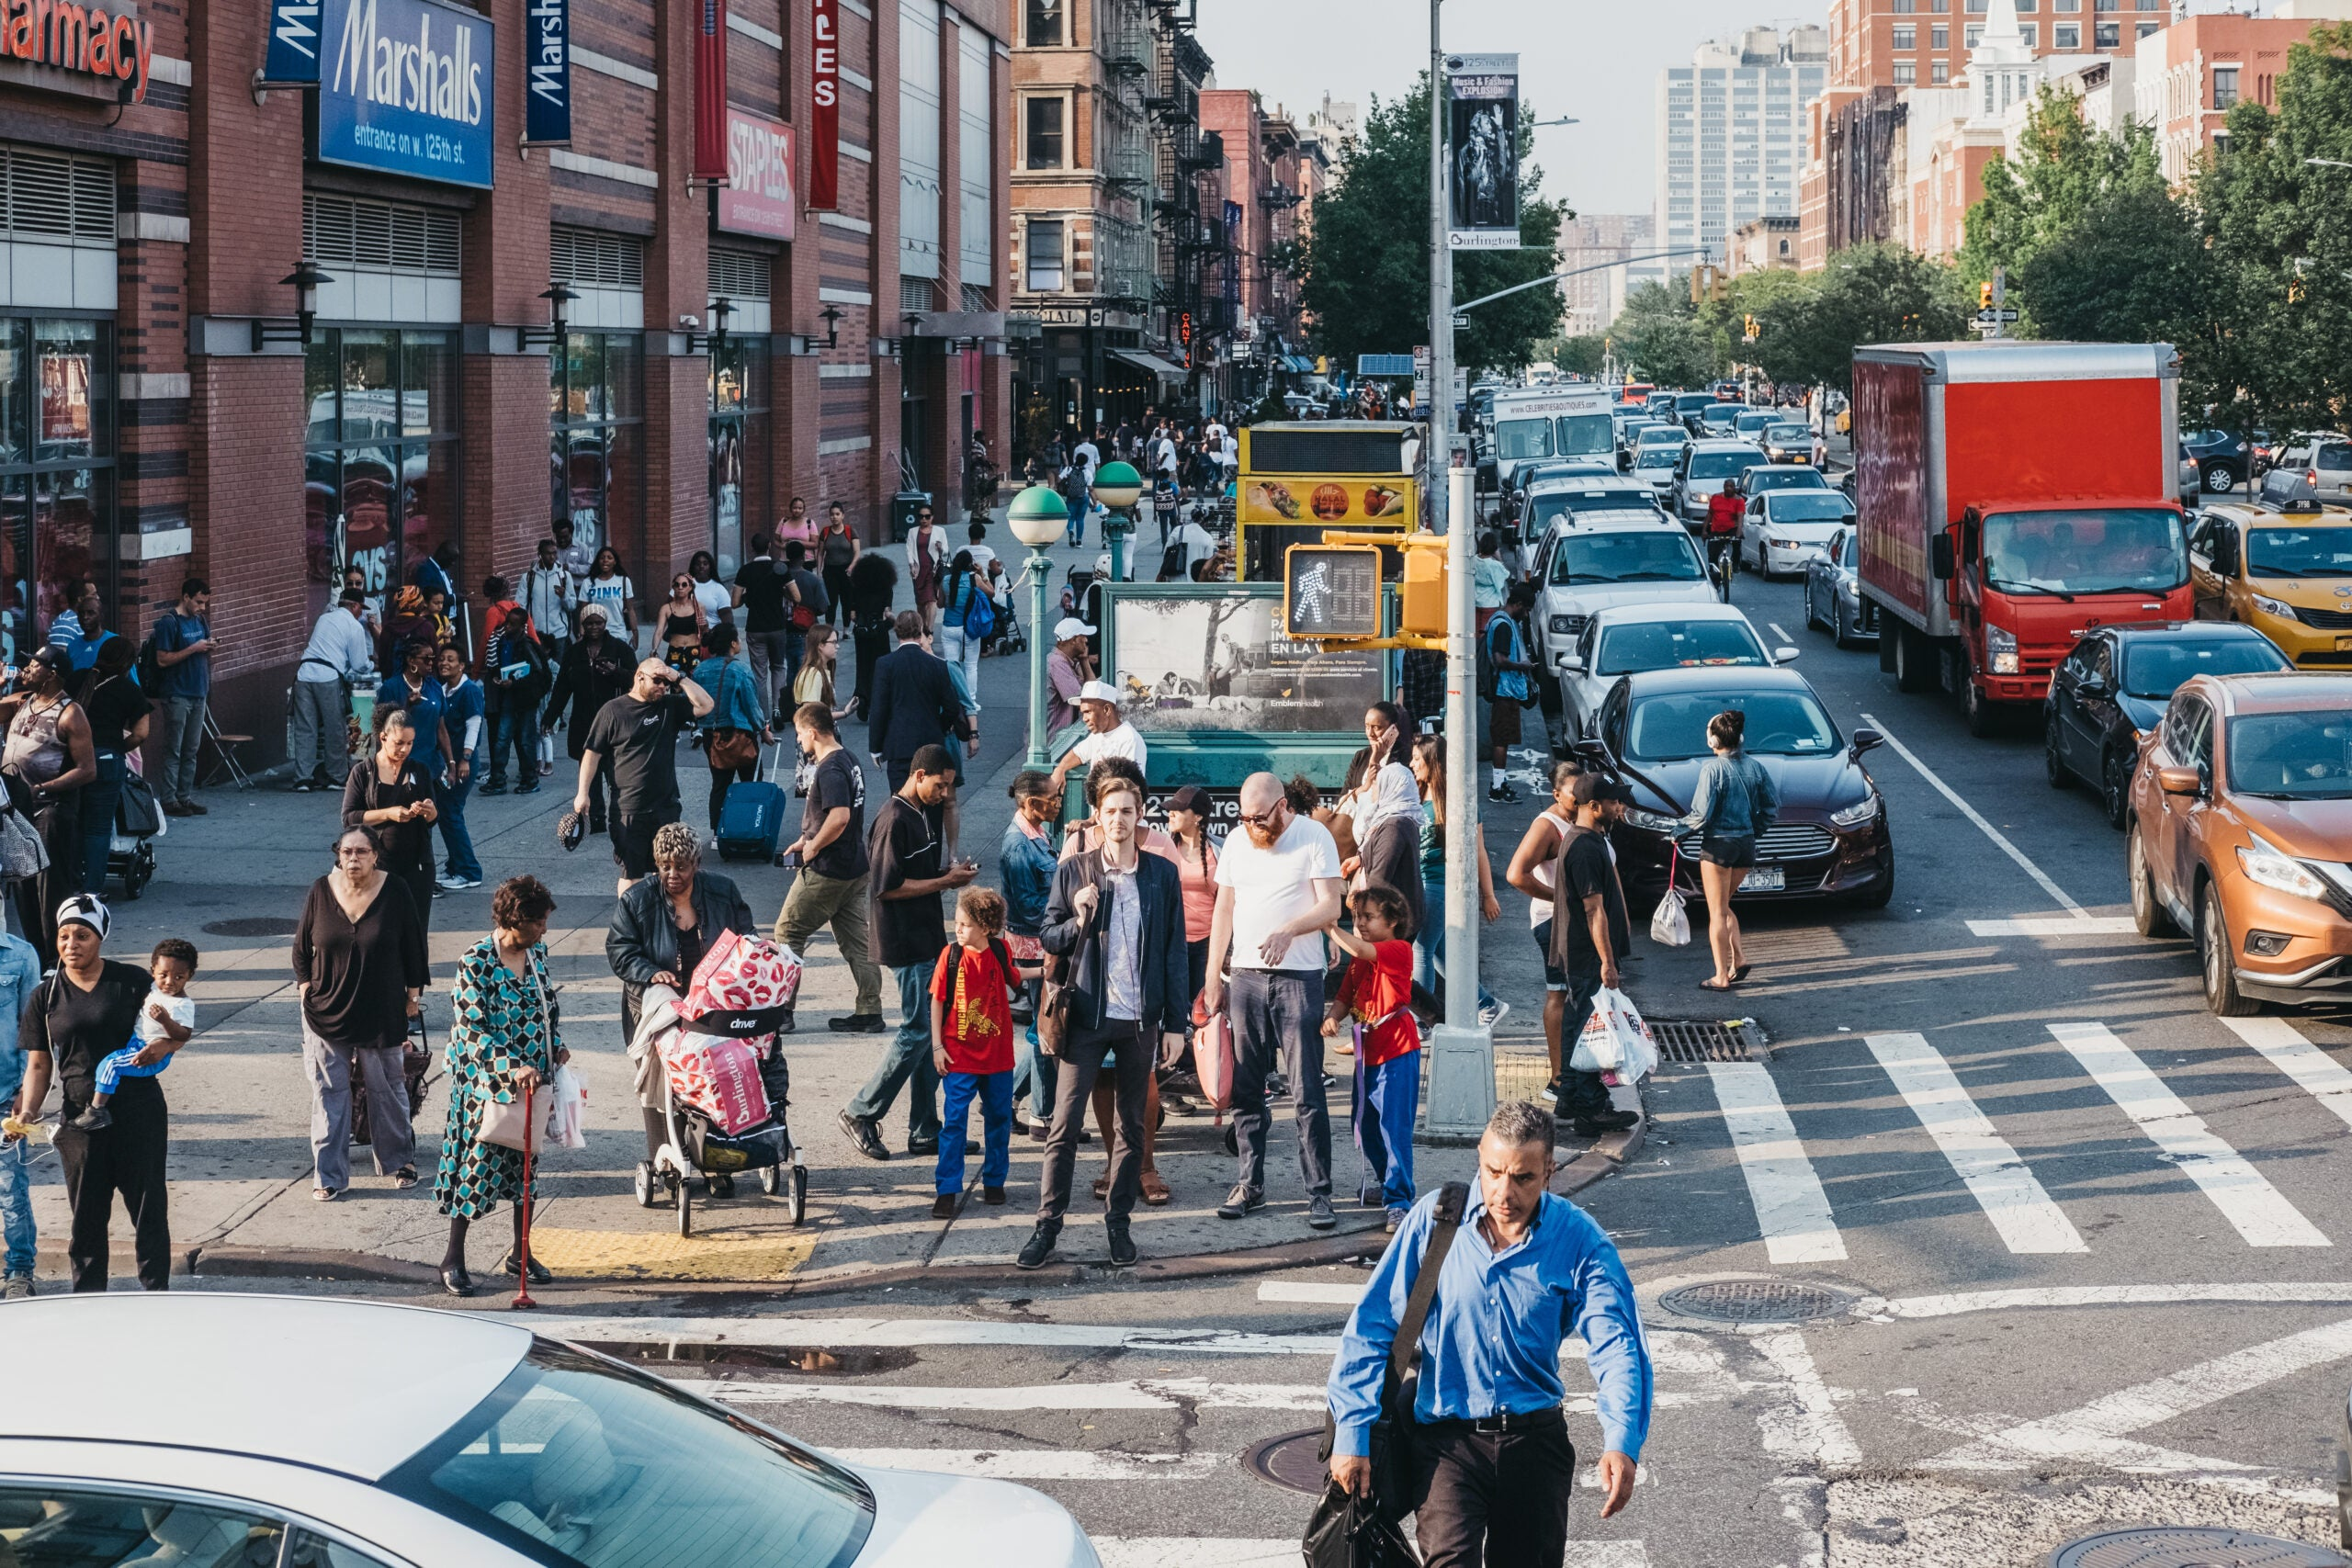 Air pollution can ruin the health benefits of 'walkable' neighborhoods